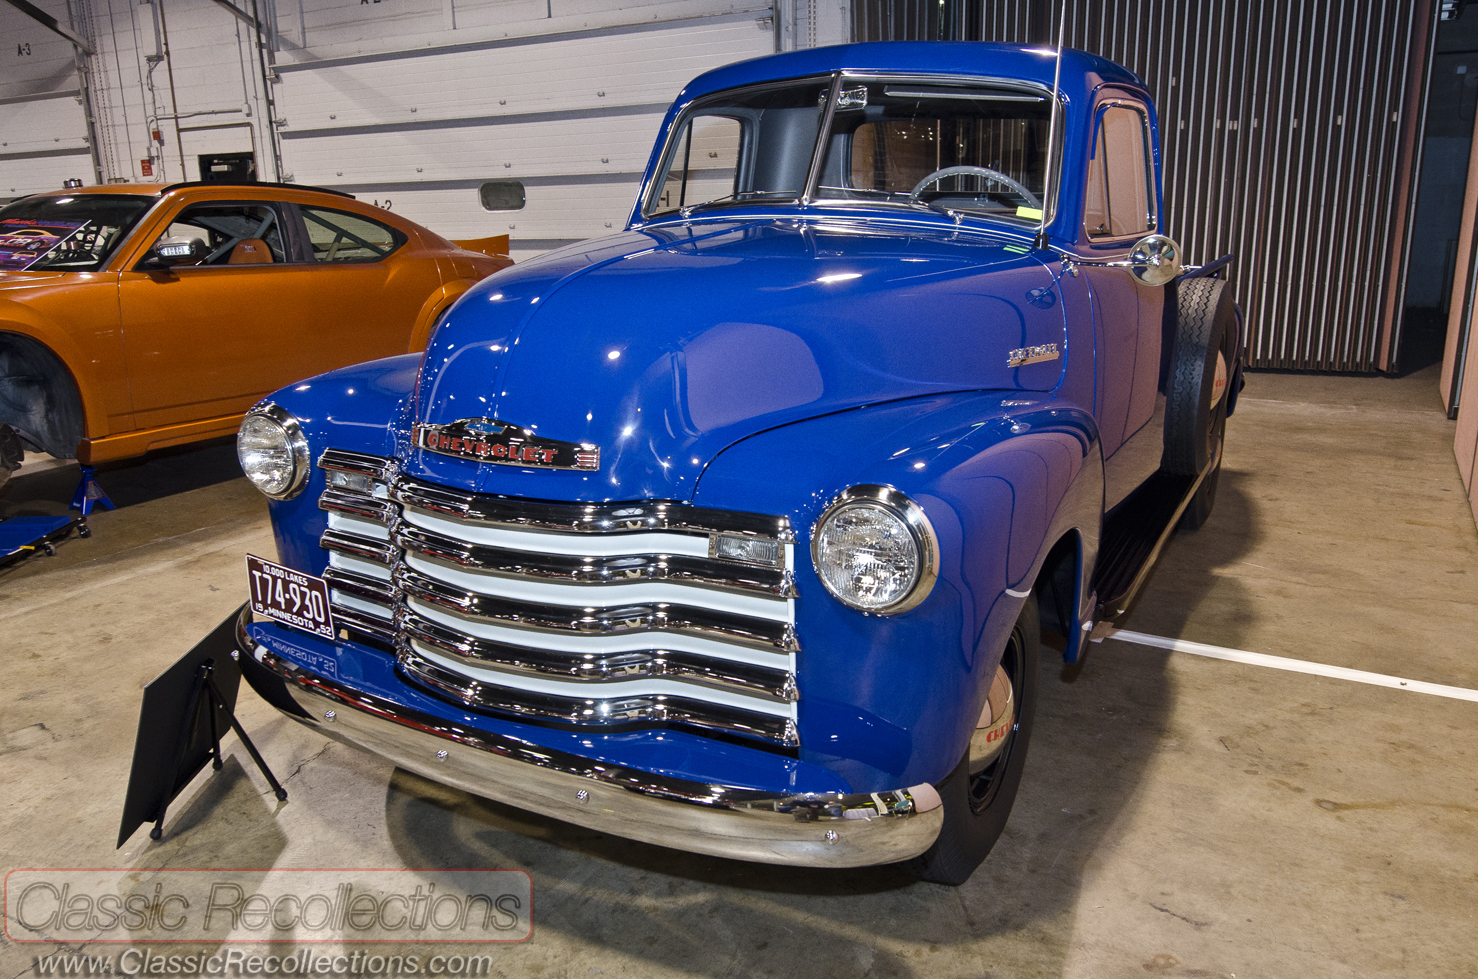 Mcacn 1952 chevrolet 3600 pickup truck classic for Chevy truck with corvette motor